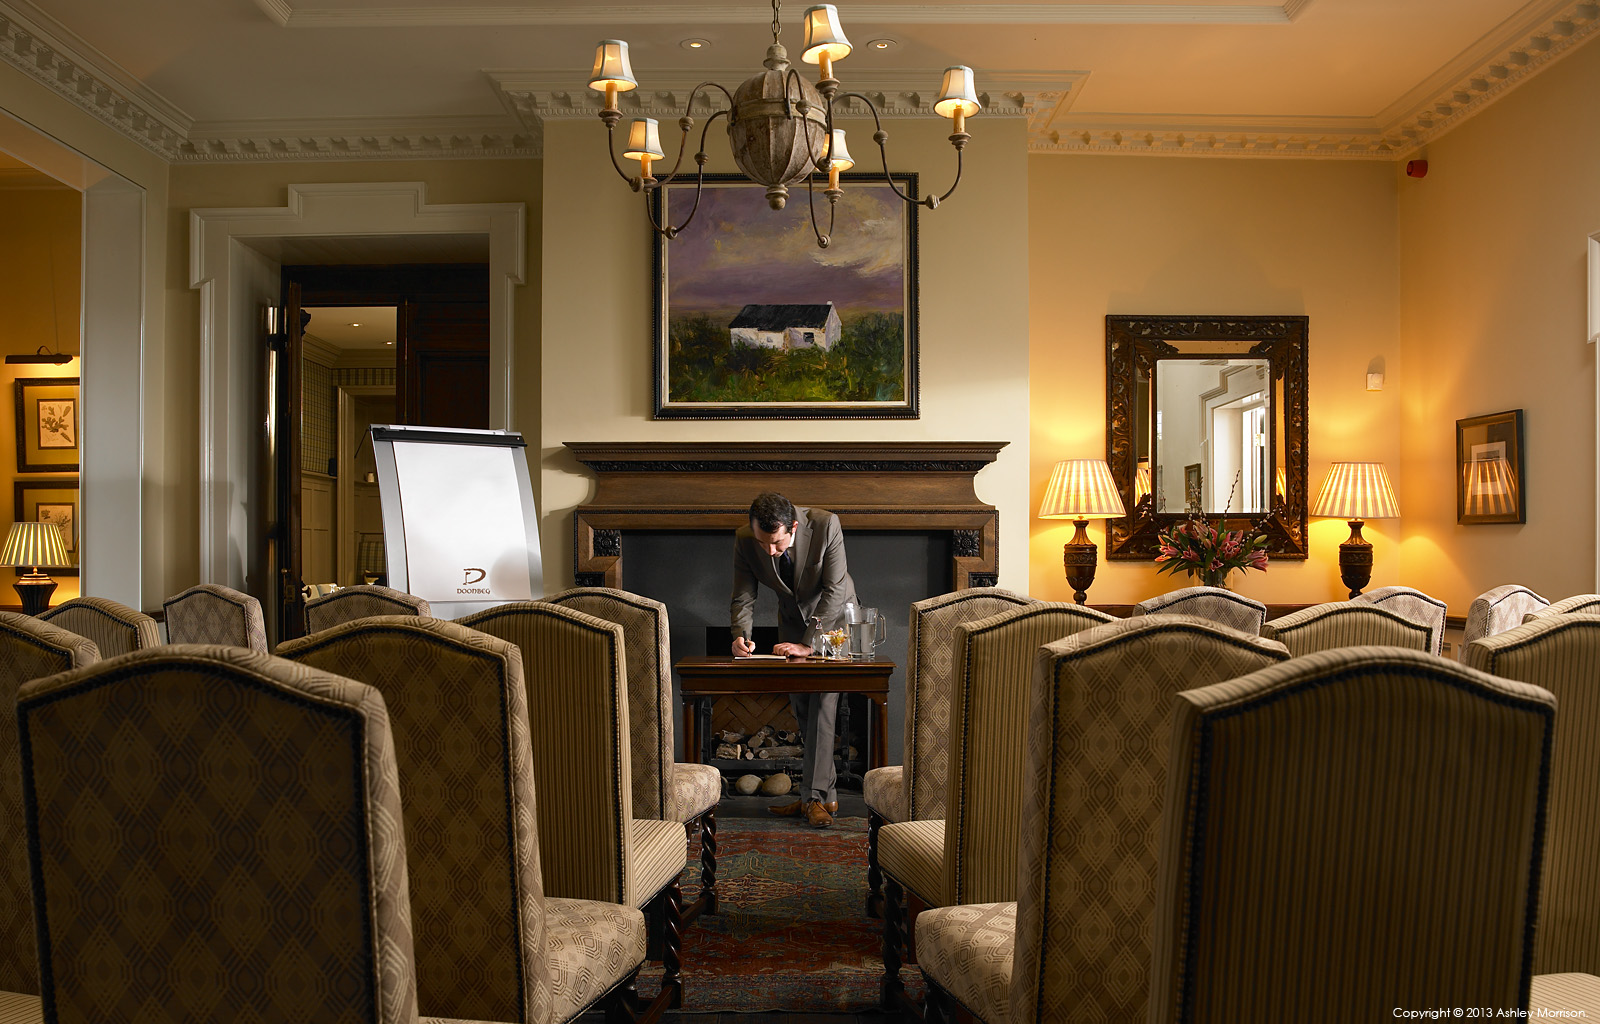 Meeting room at Doonbeg Golf & Spa Resort in County Clare by Ashley Morrison.